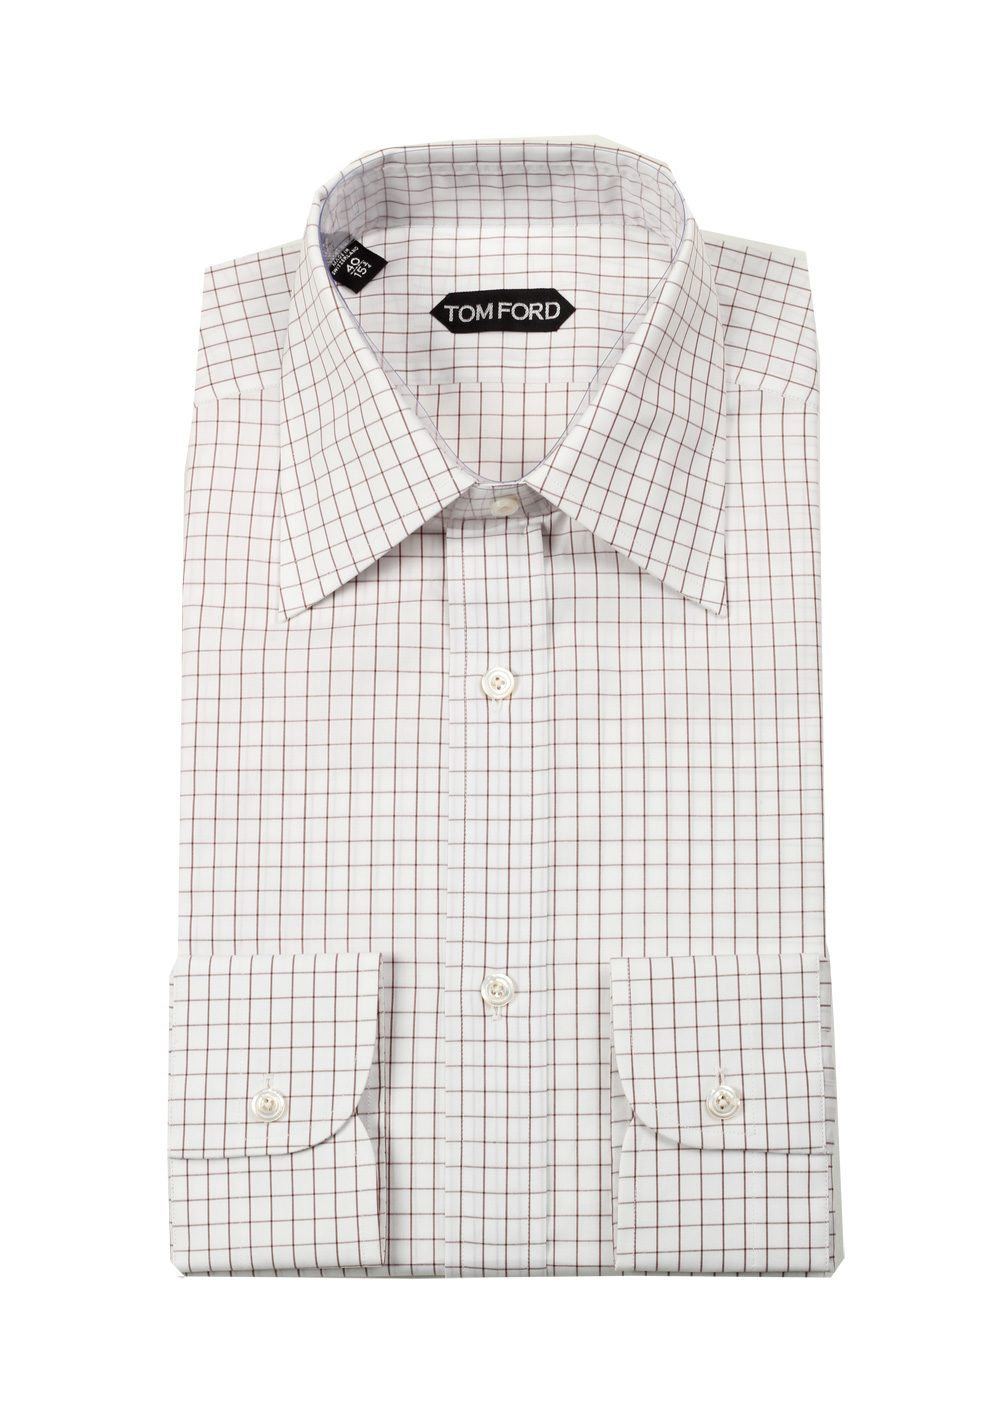 Tom ford checked white brown dress shirt size 40 15 75 u for Size 15 dress shirt